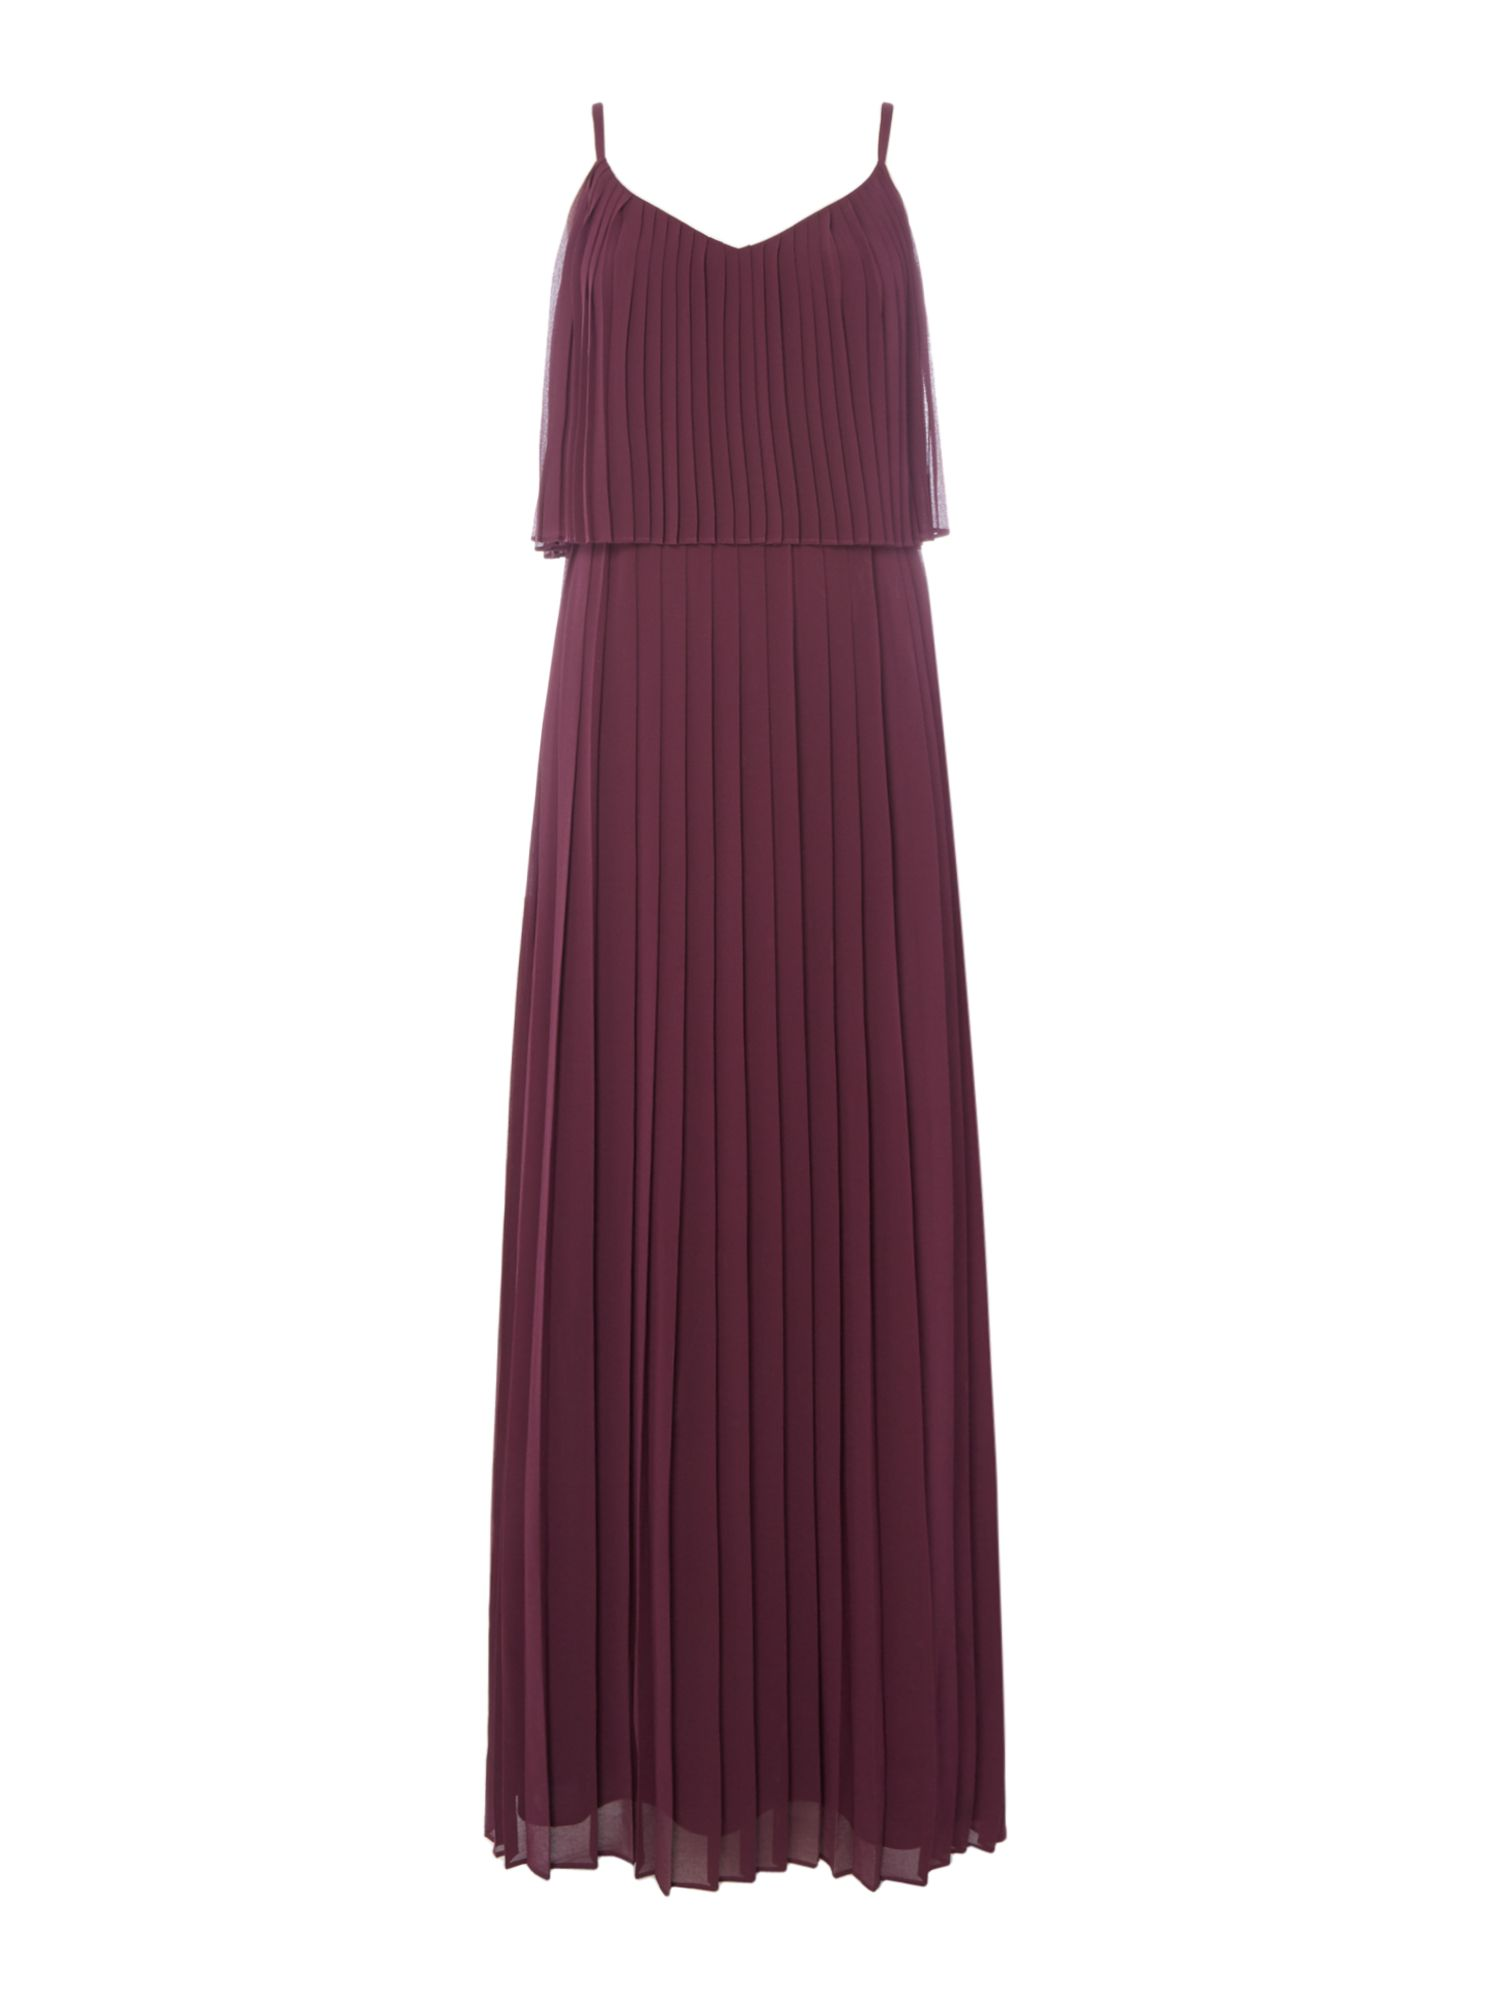 ISSA Iyla Pleated Strappy Dress, Purple